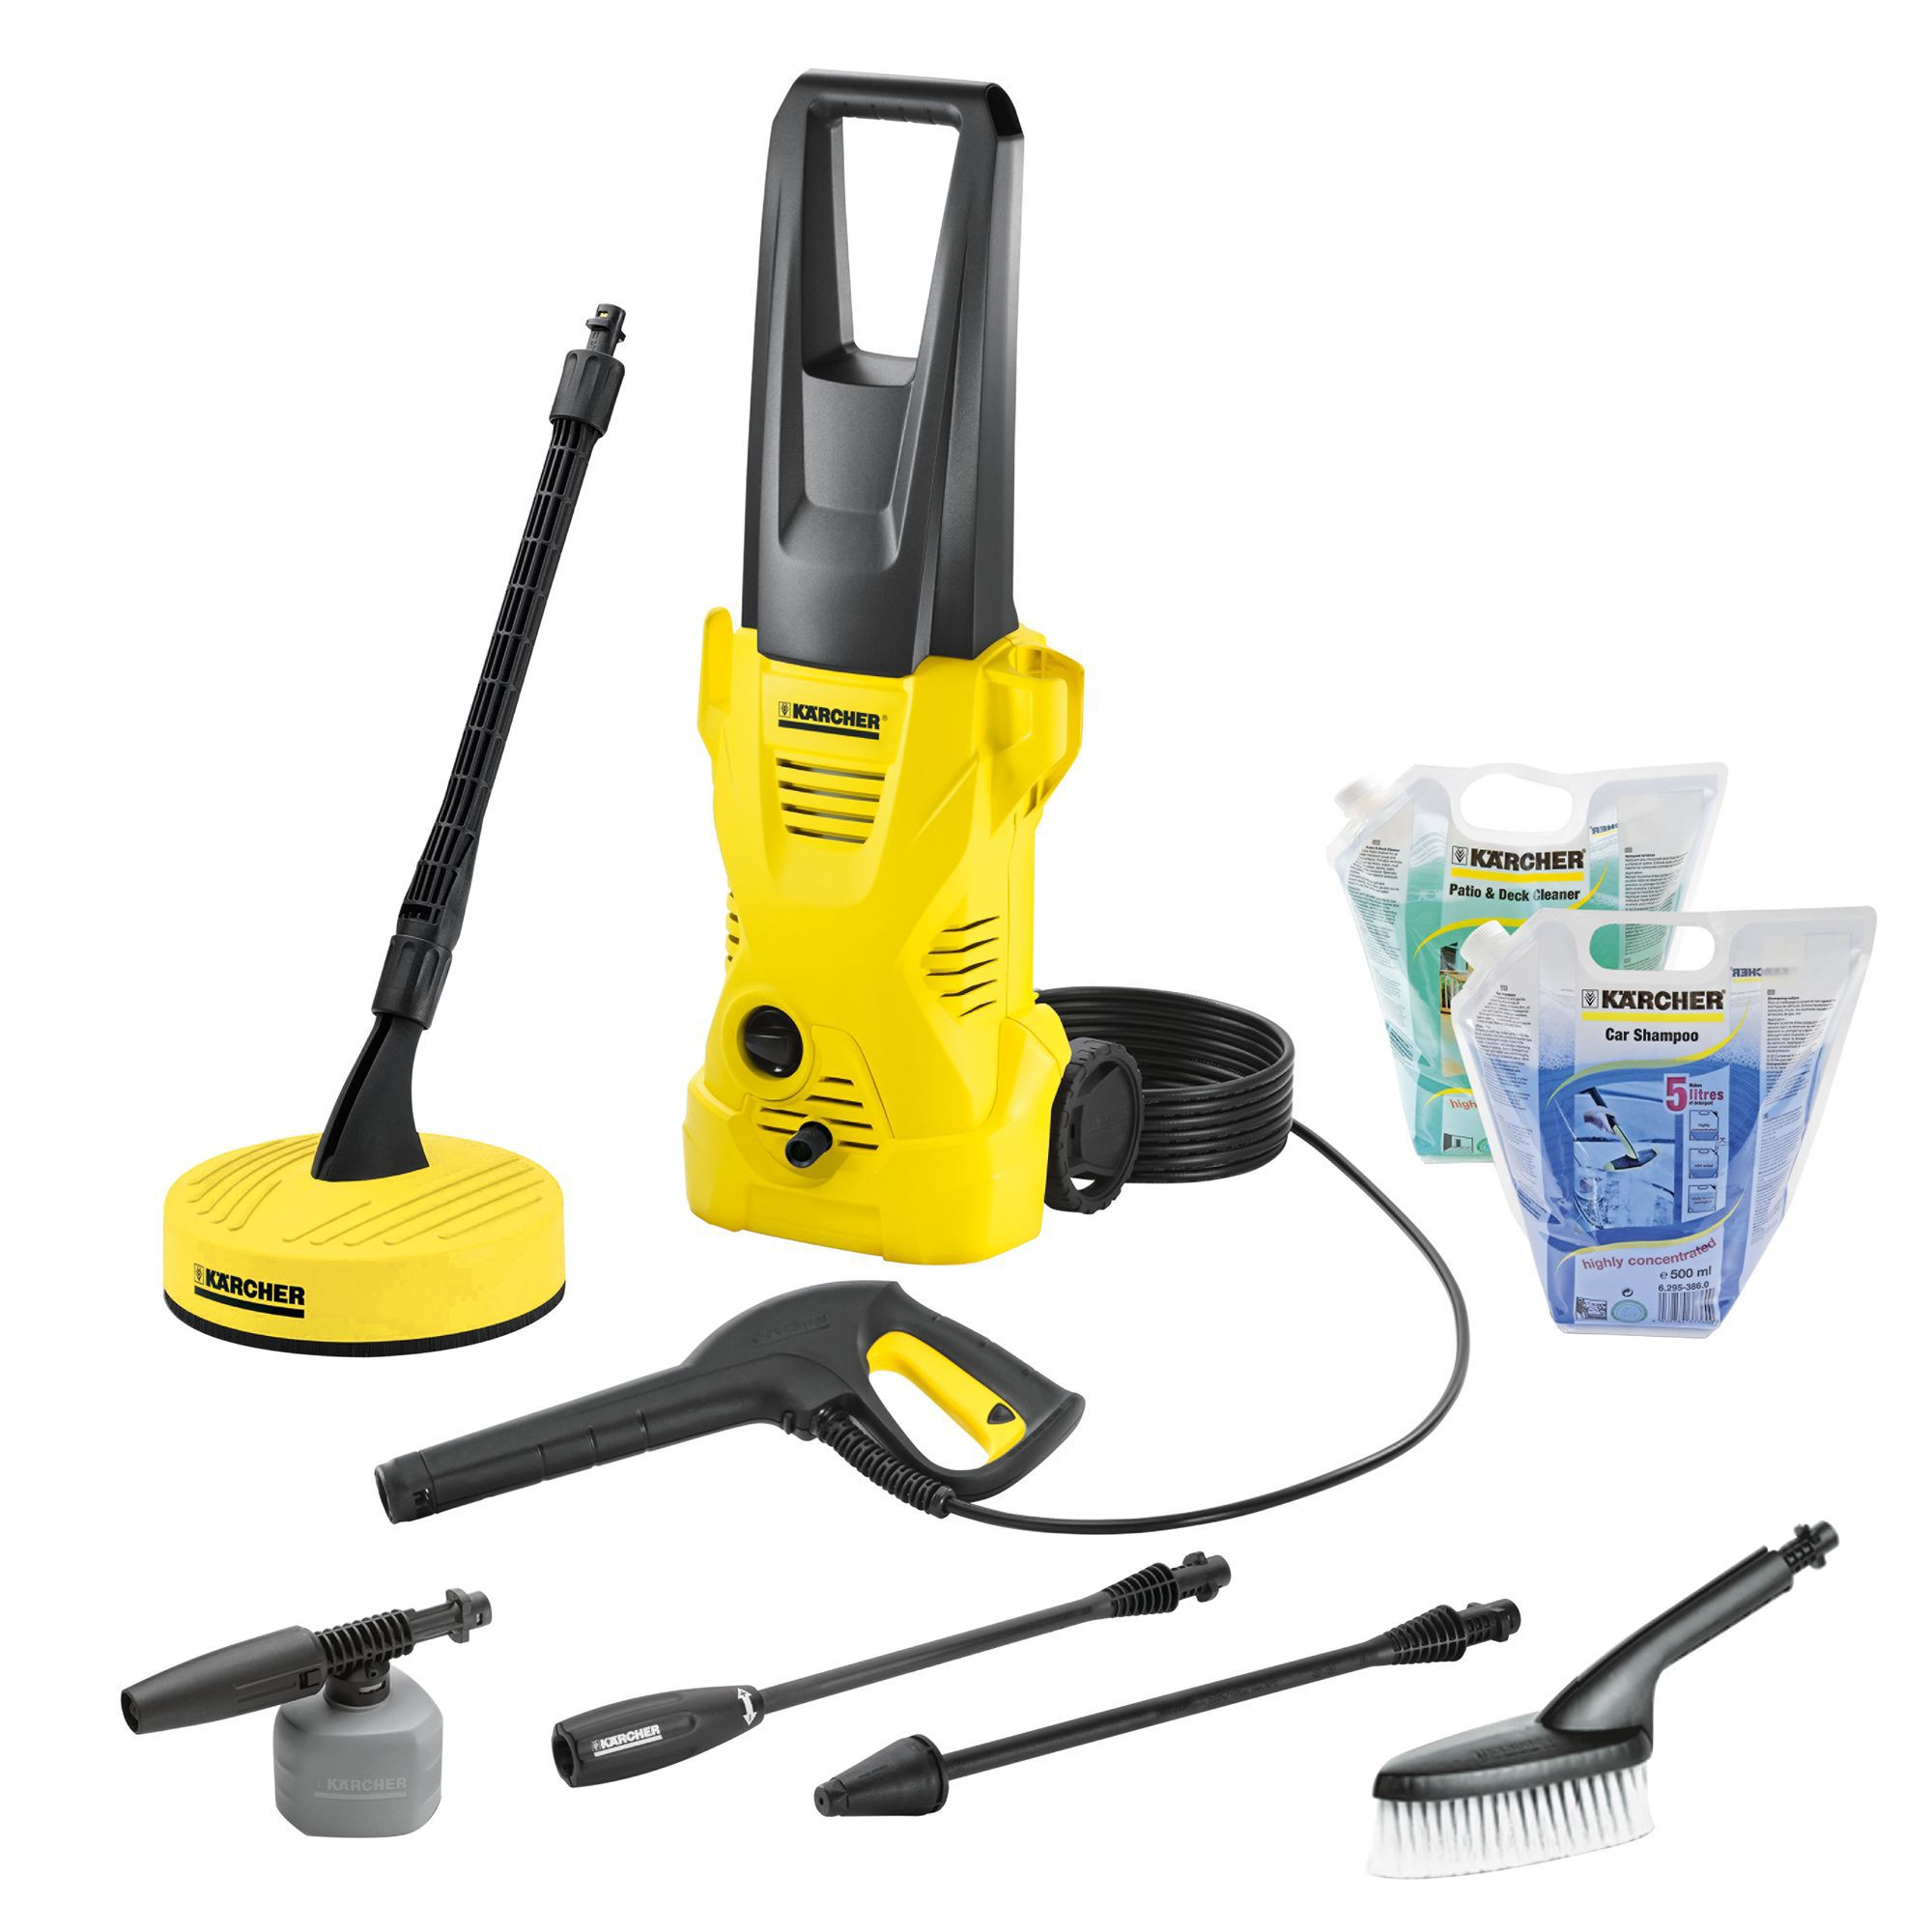 karcher k2 home car pressure washer 110 bar. Black Bedroom Furniture Sets. Home Design Ideas